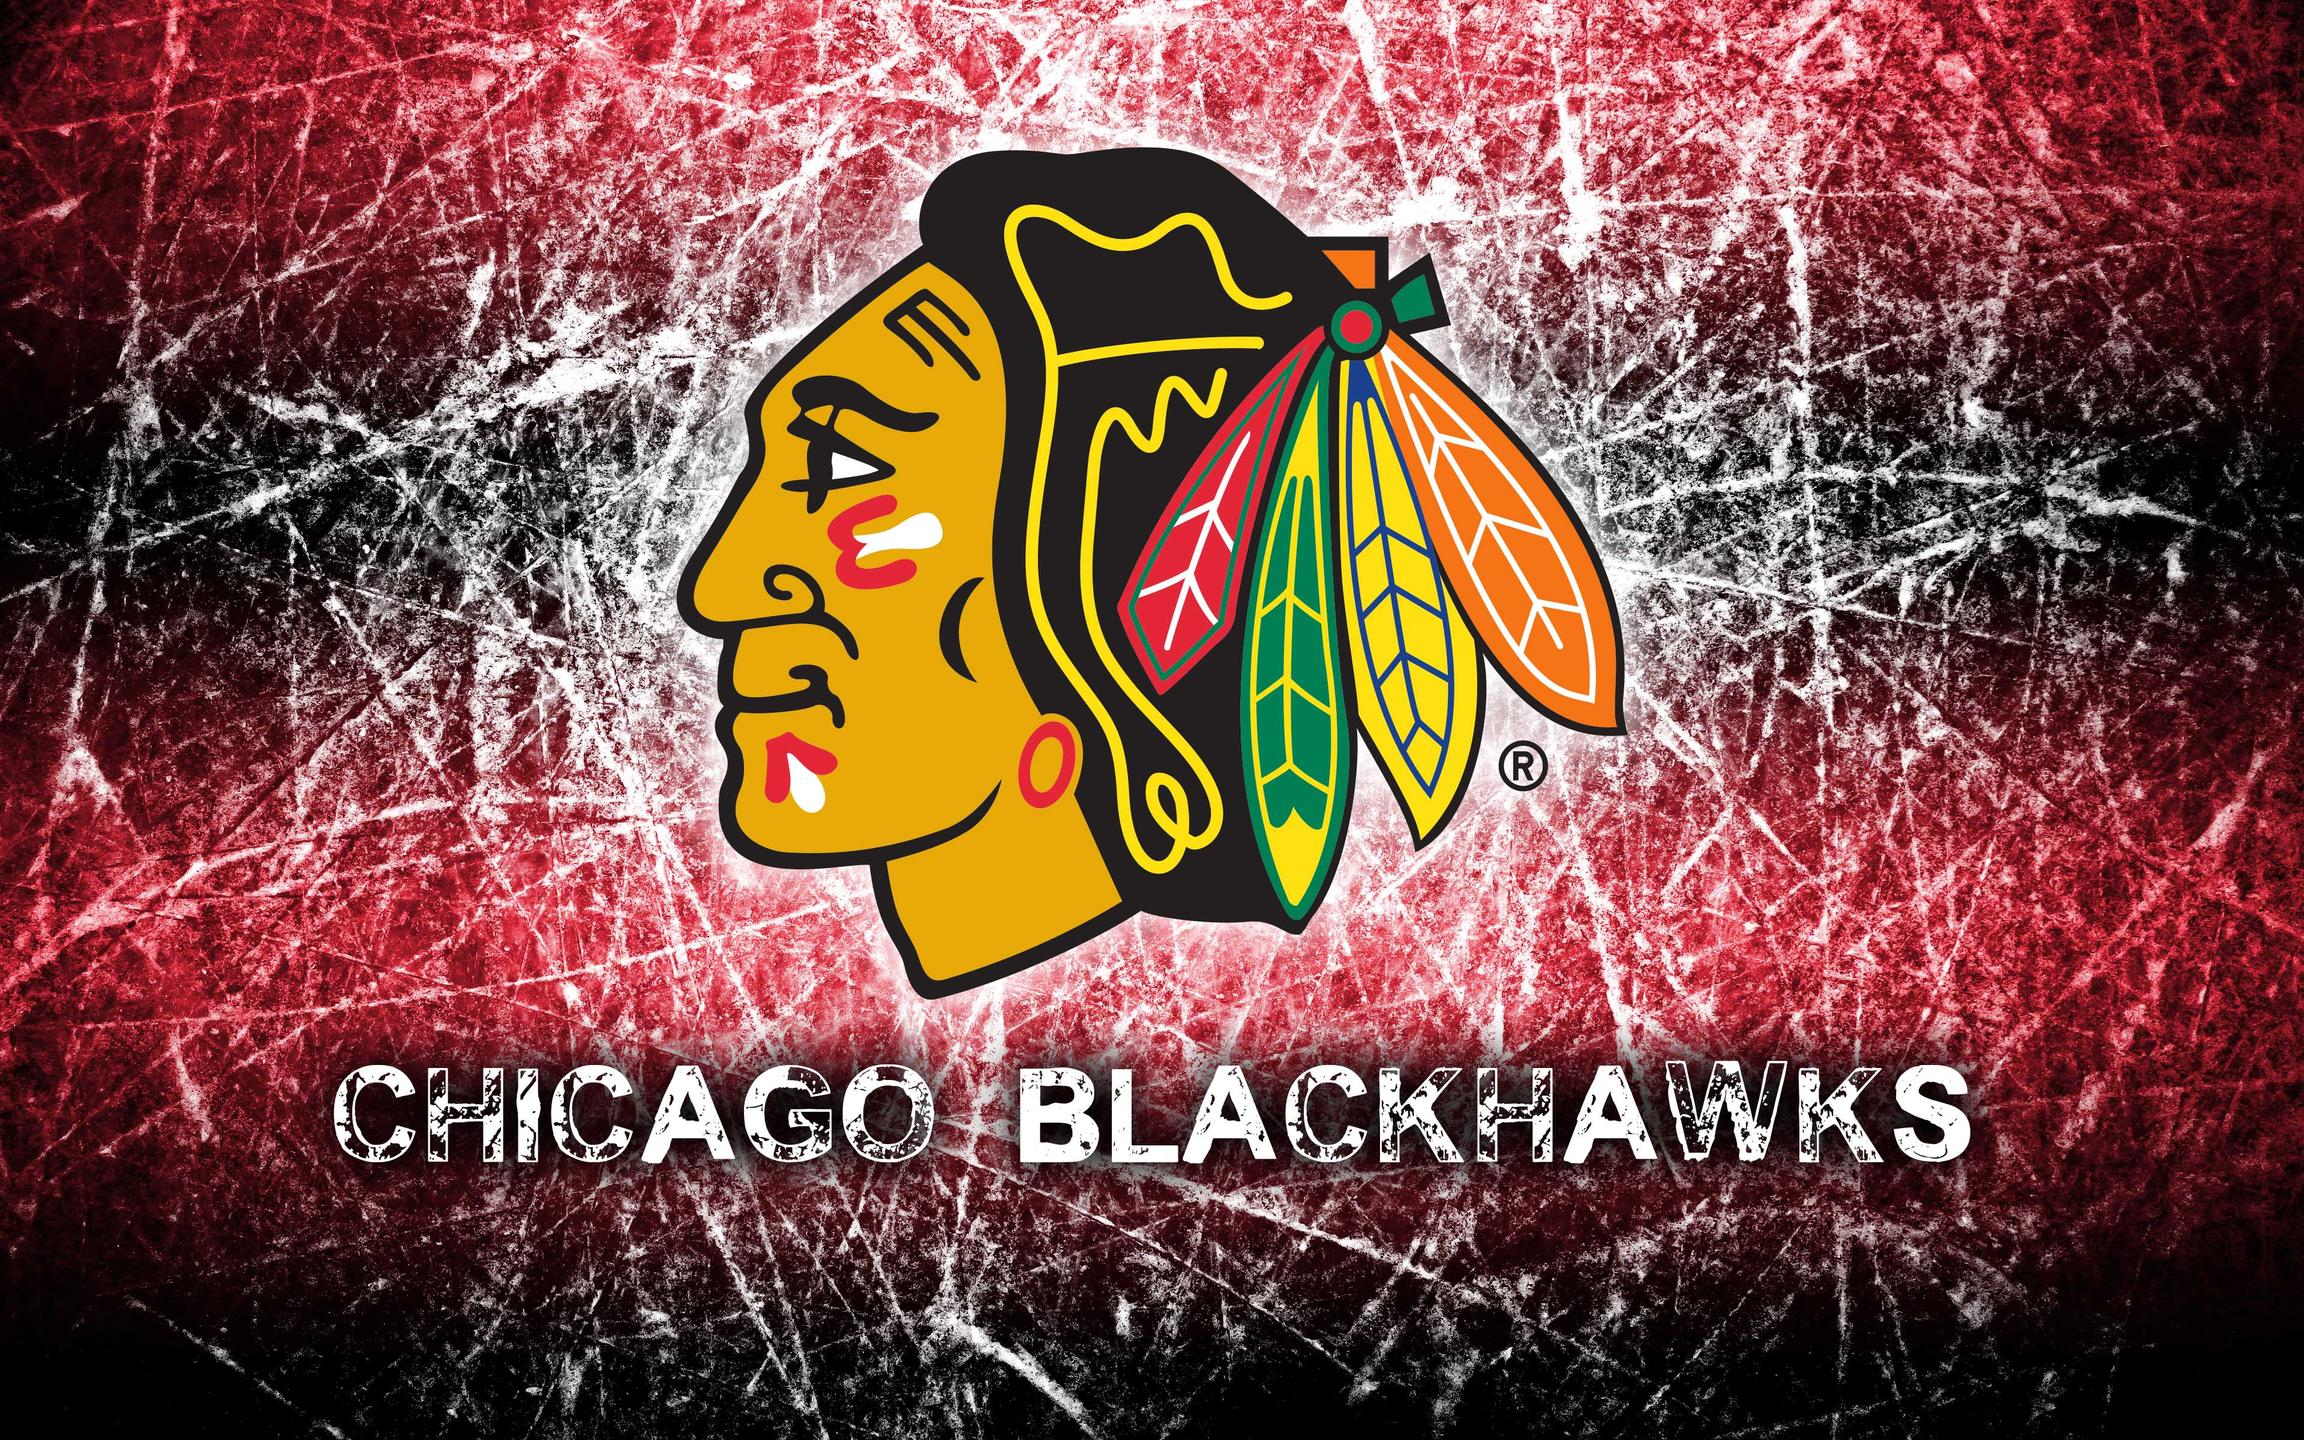 Chicago Blackhawks Wallpapers For IPhone (40 Wallpapers